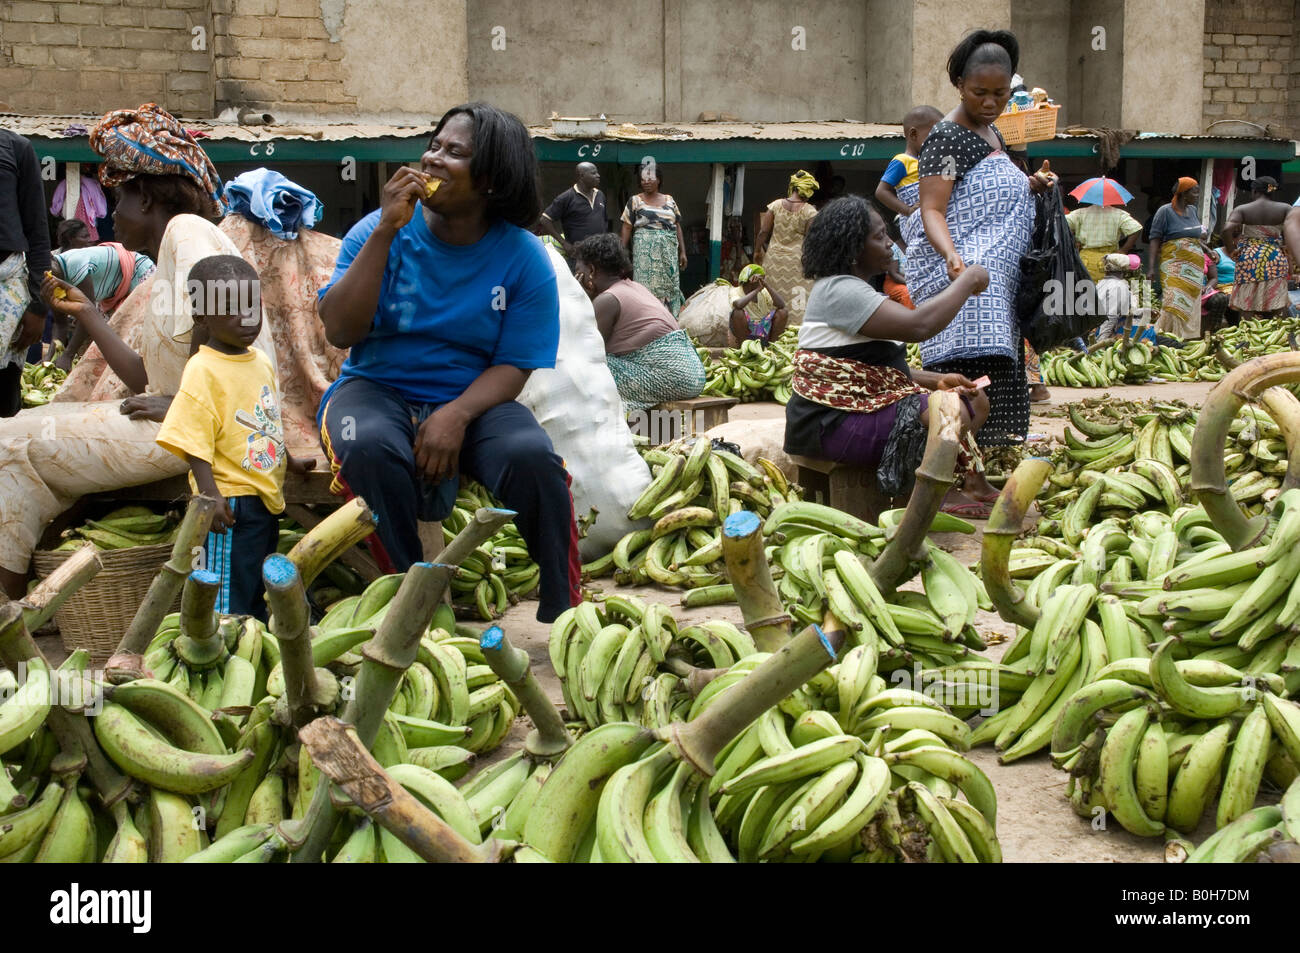 Market specialized in selling plantains (cooking bananas), Accra, Ghana - Stock Image